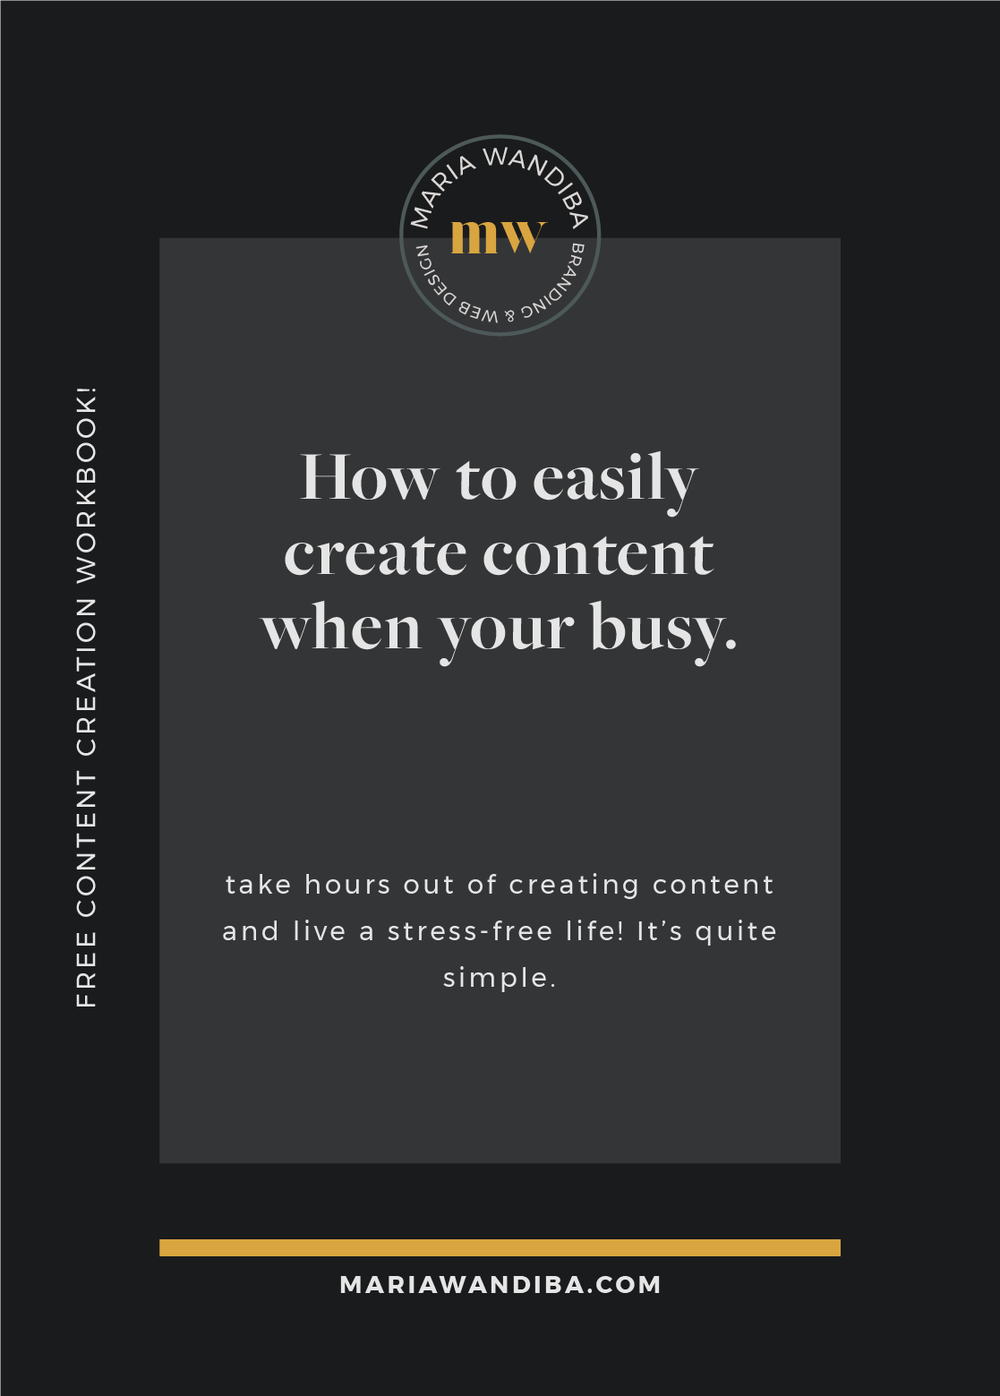 content-creation-for-the-busy-entrepreneur.png